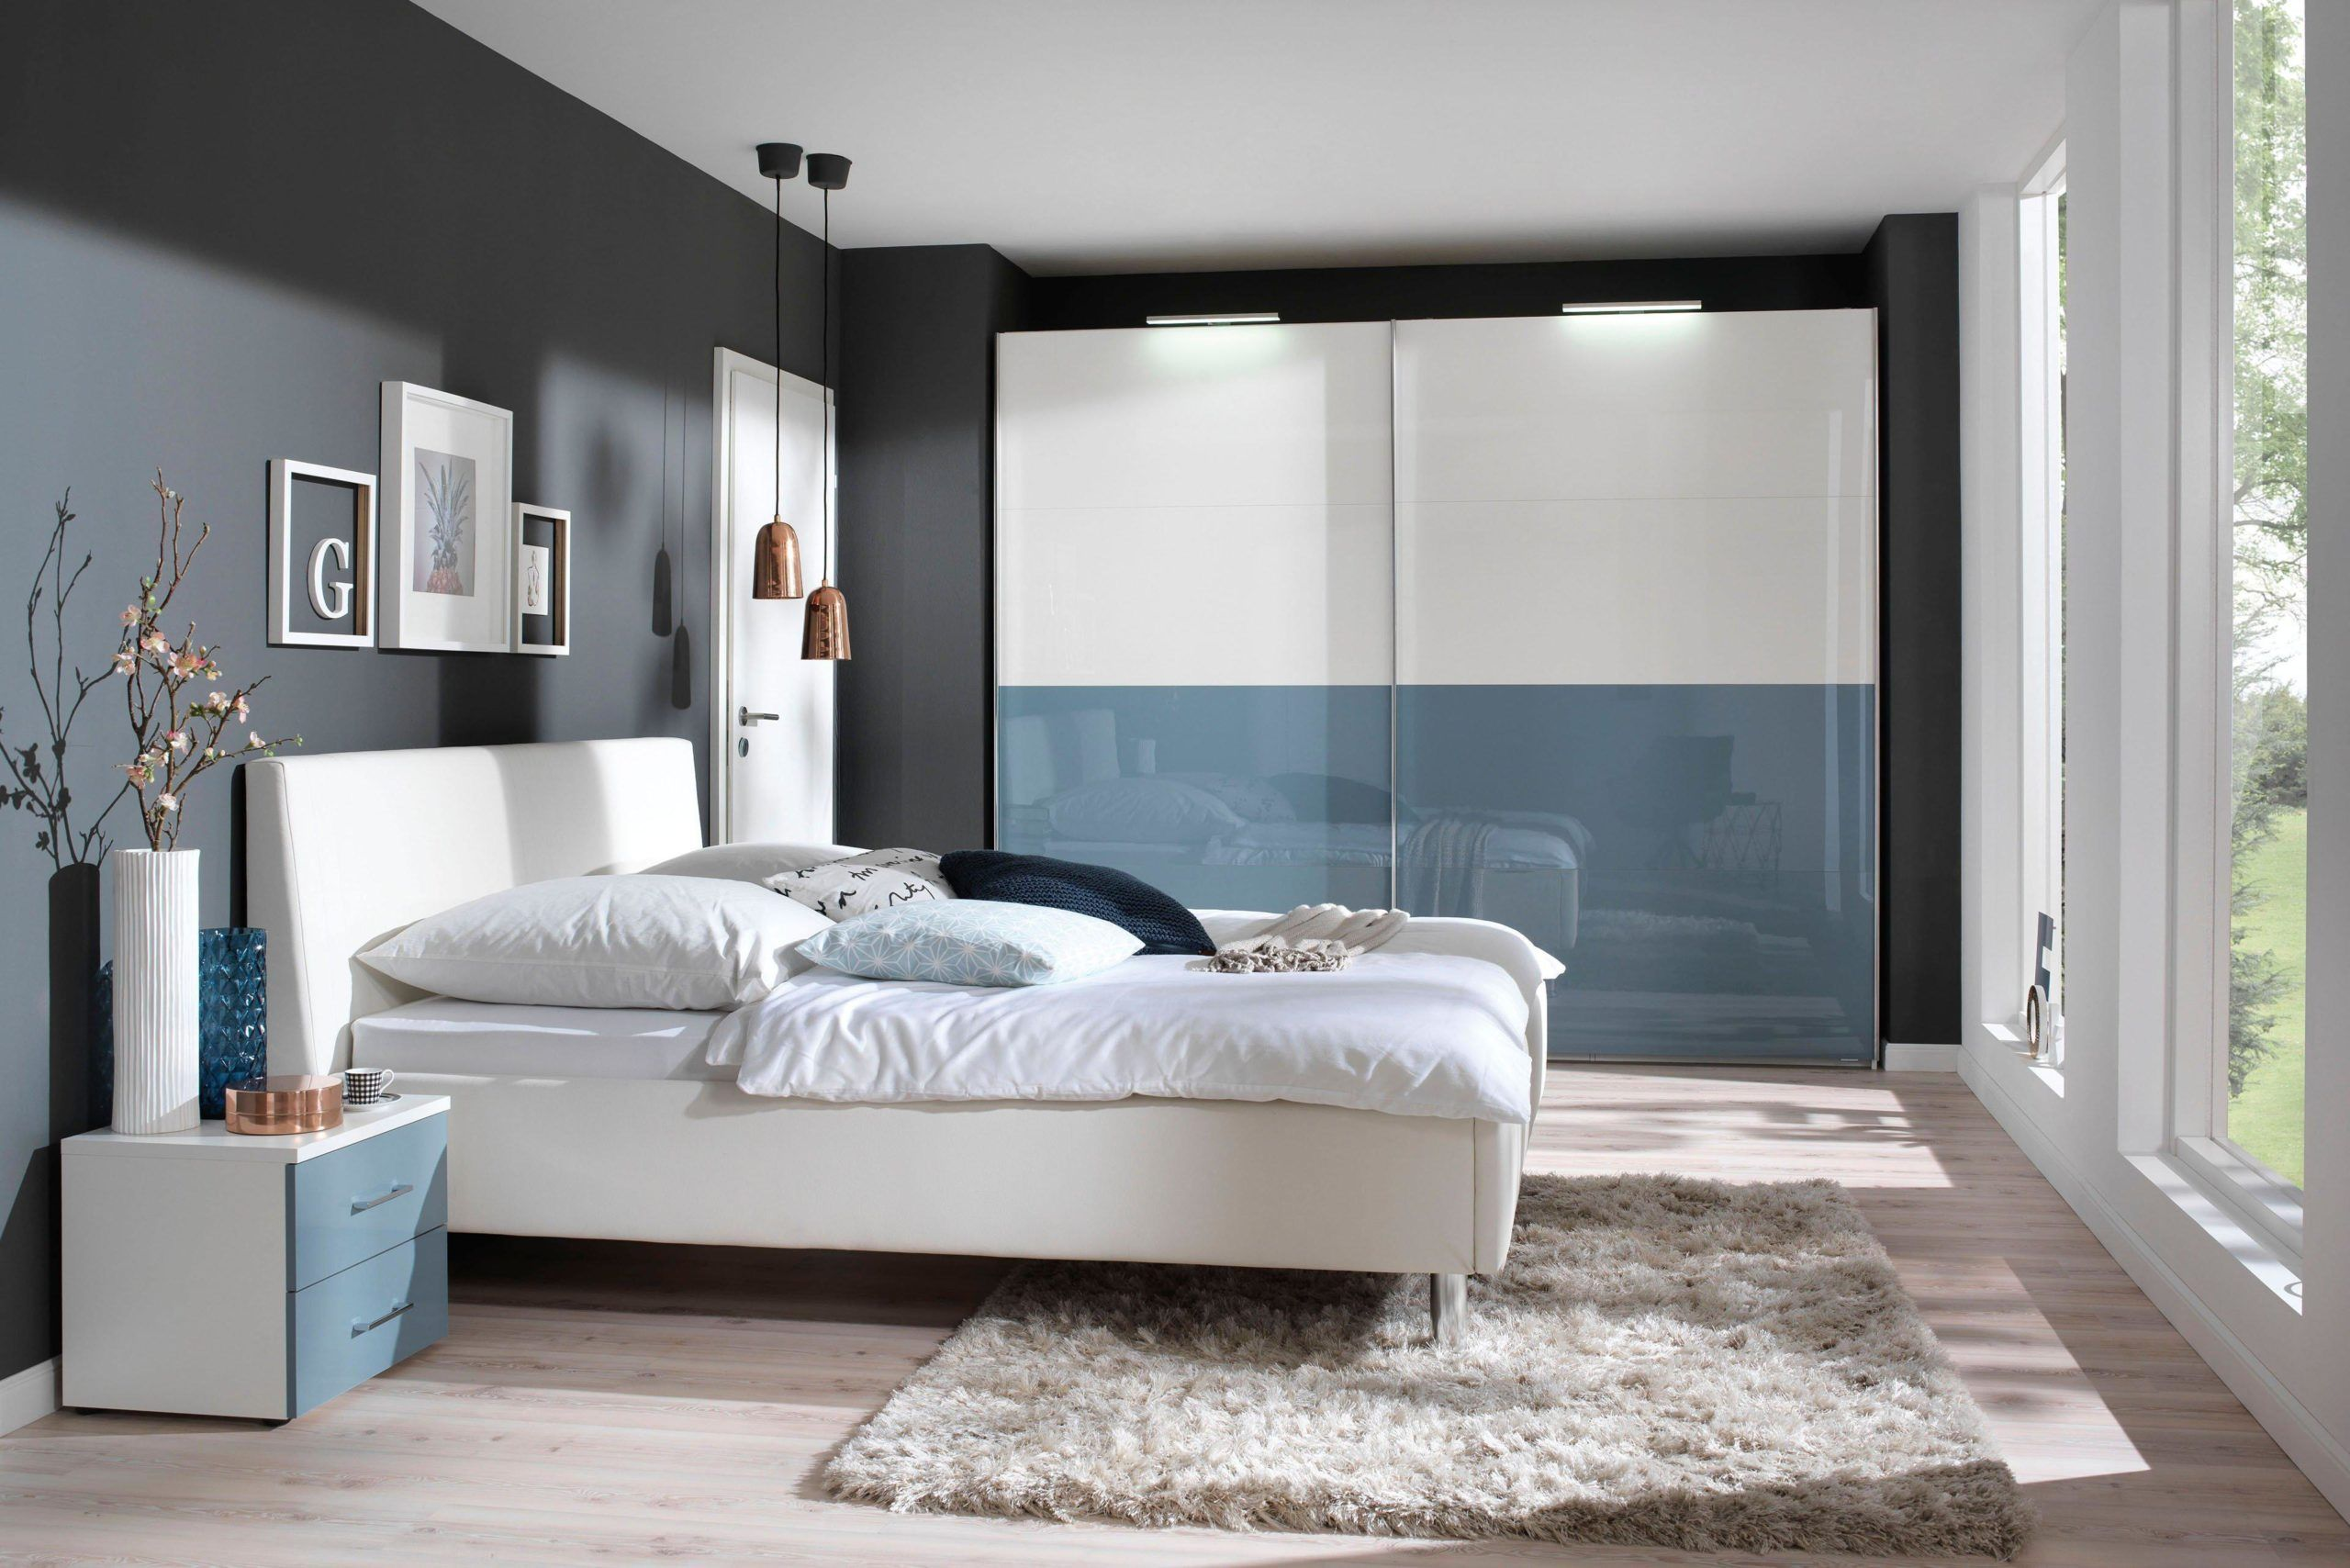 Pin on Schlafzimmer Ideen in 2019